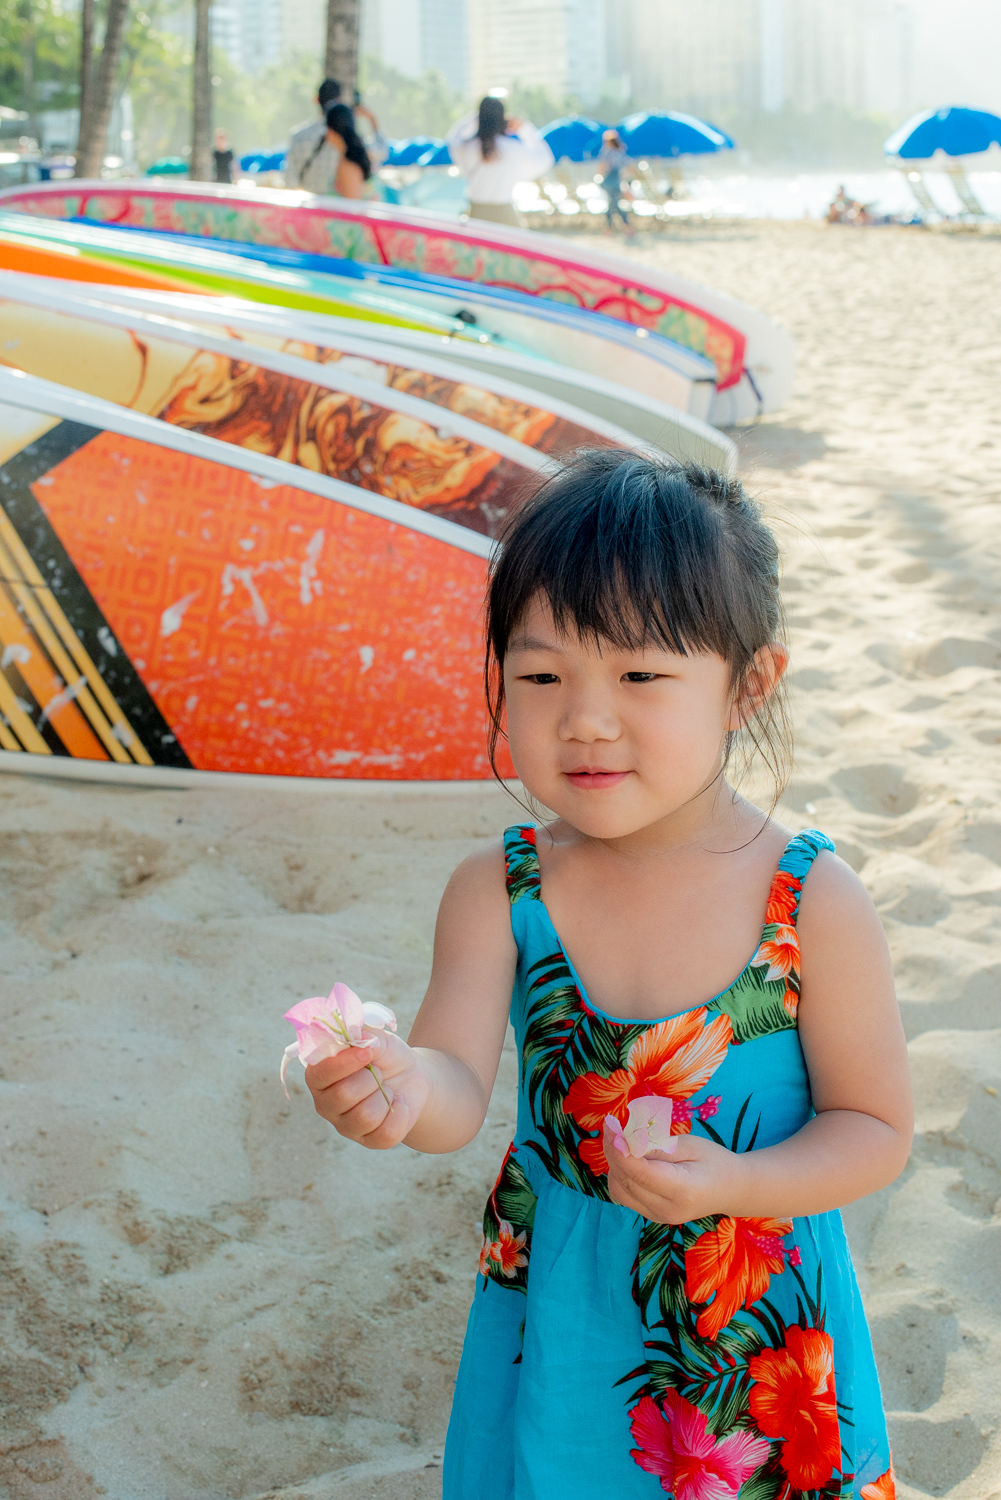 Small girl handing out flowers at beach